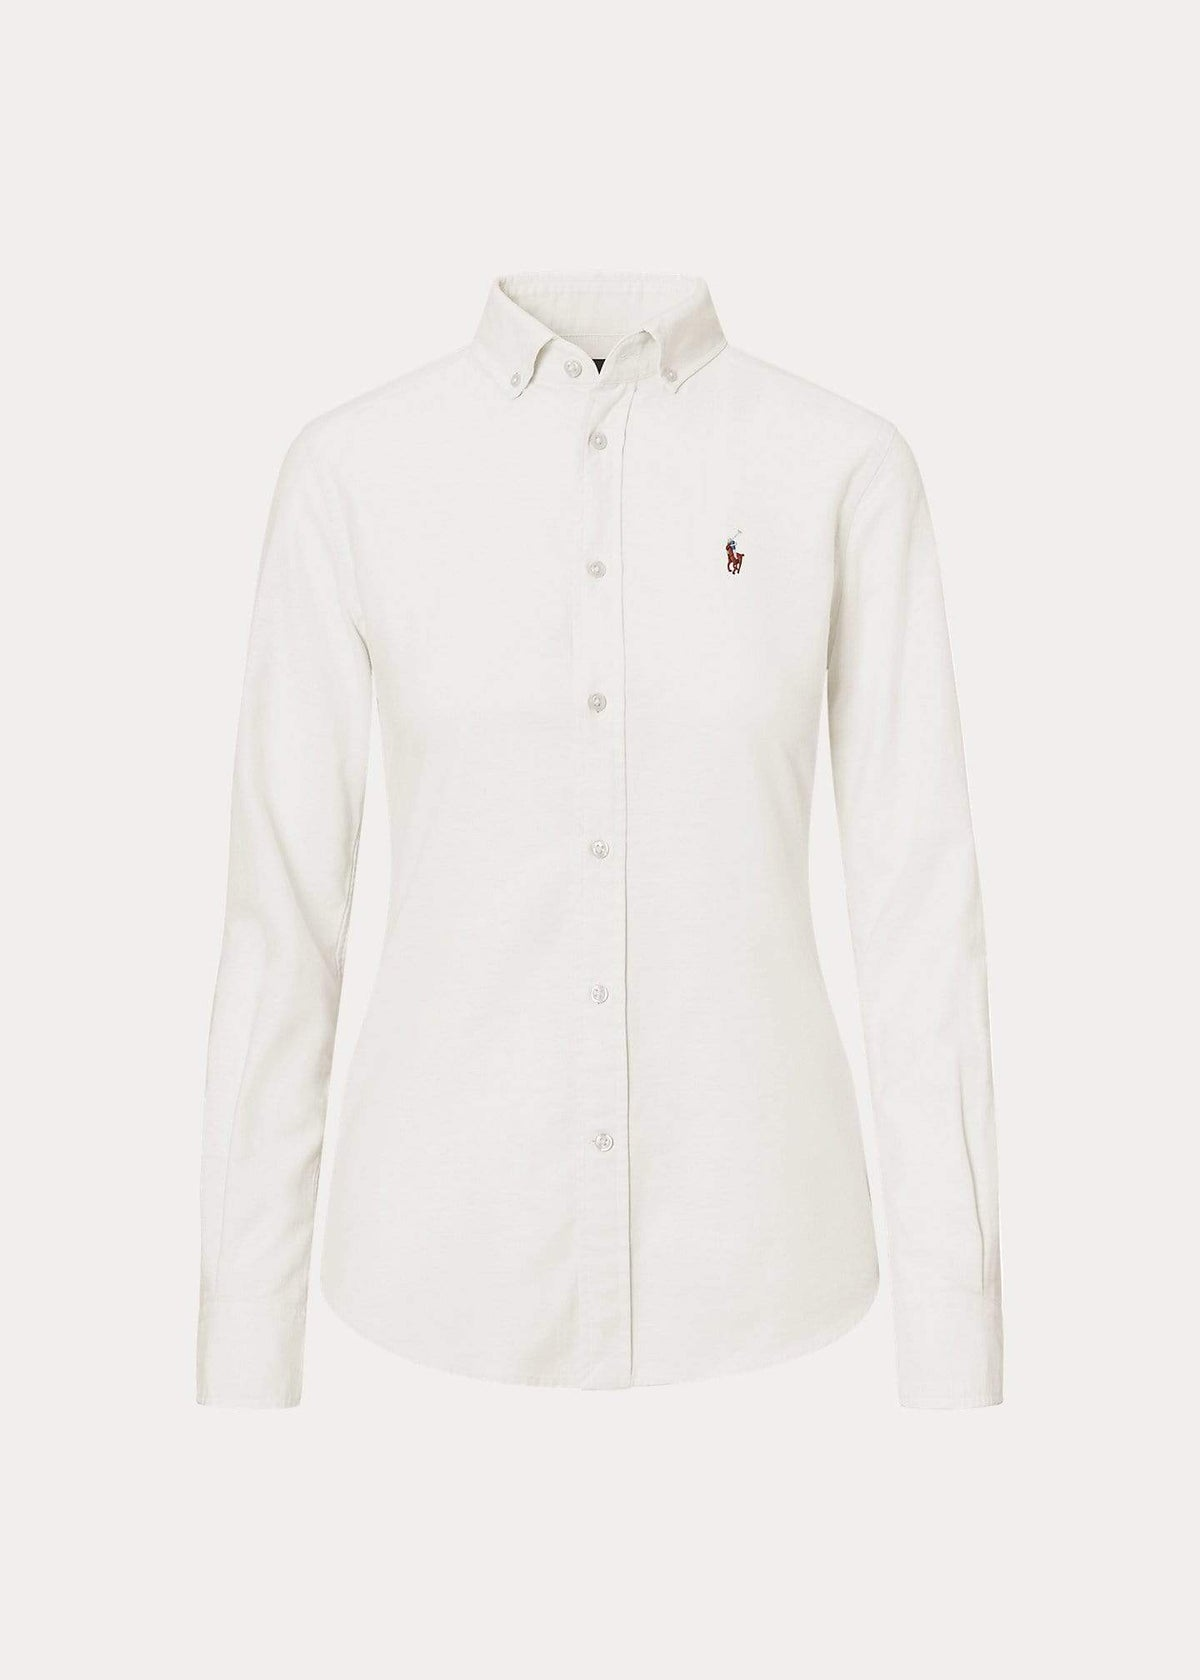 Ralph Lauren Ladies Oxford Shirt